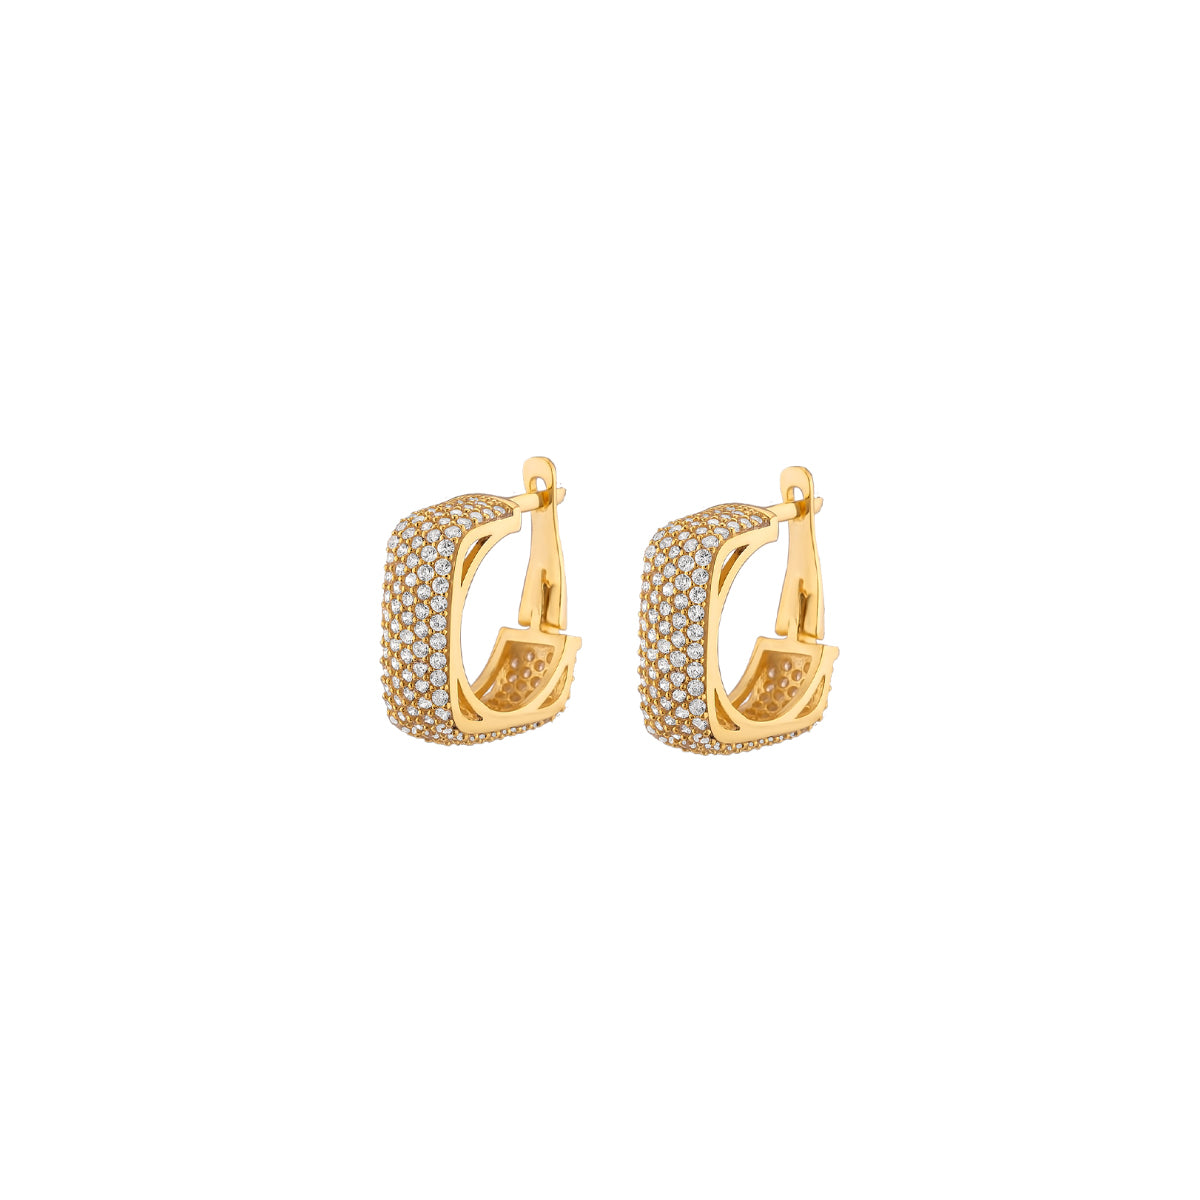 925 Sterling silver gold plated, square earrings with tiny zirconia stones.